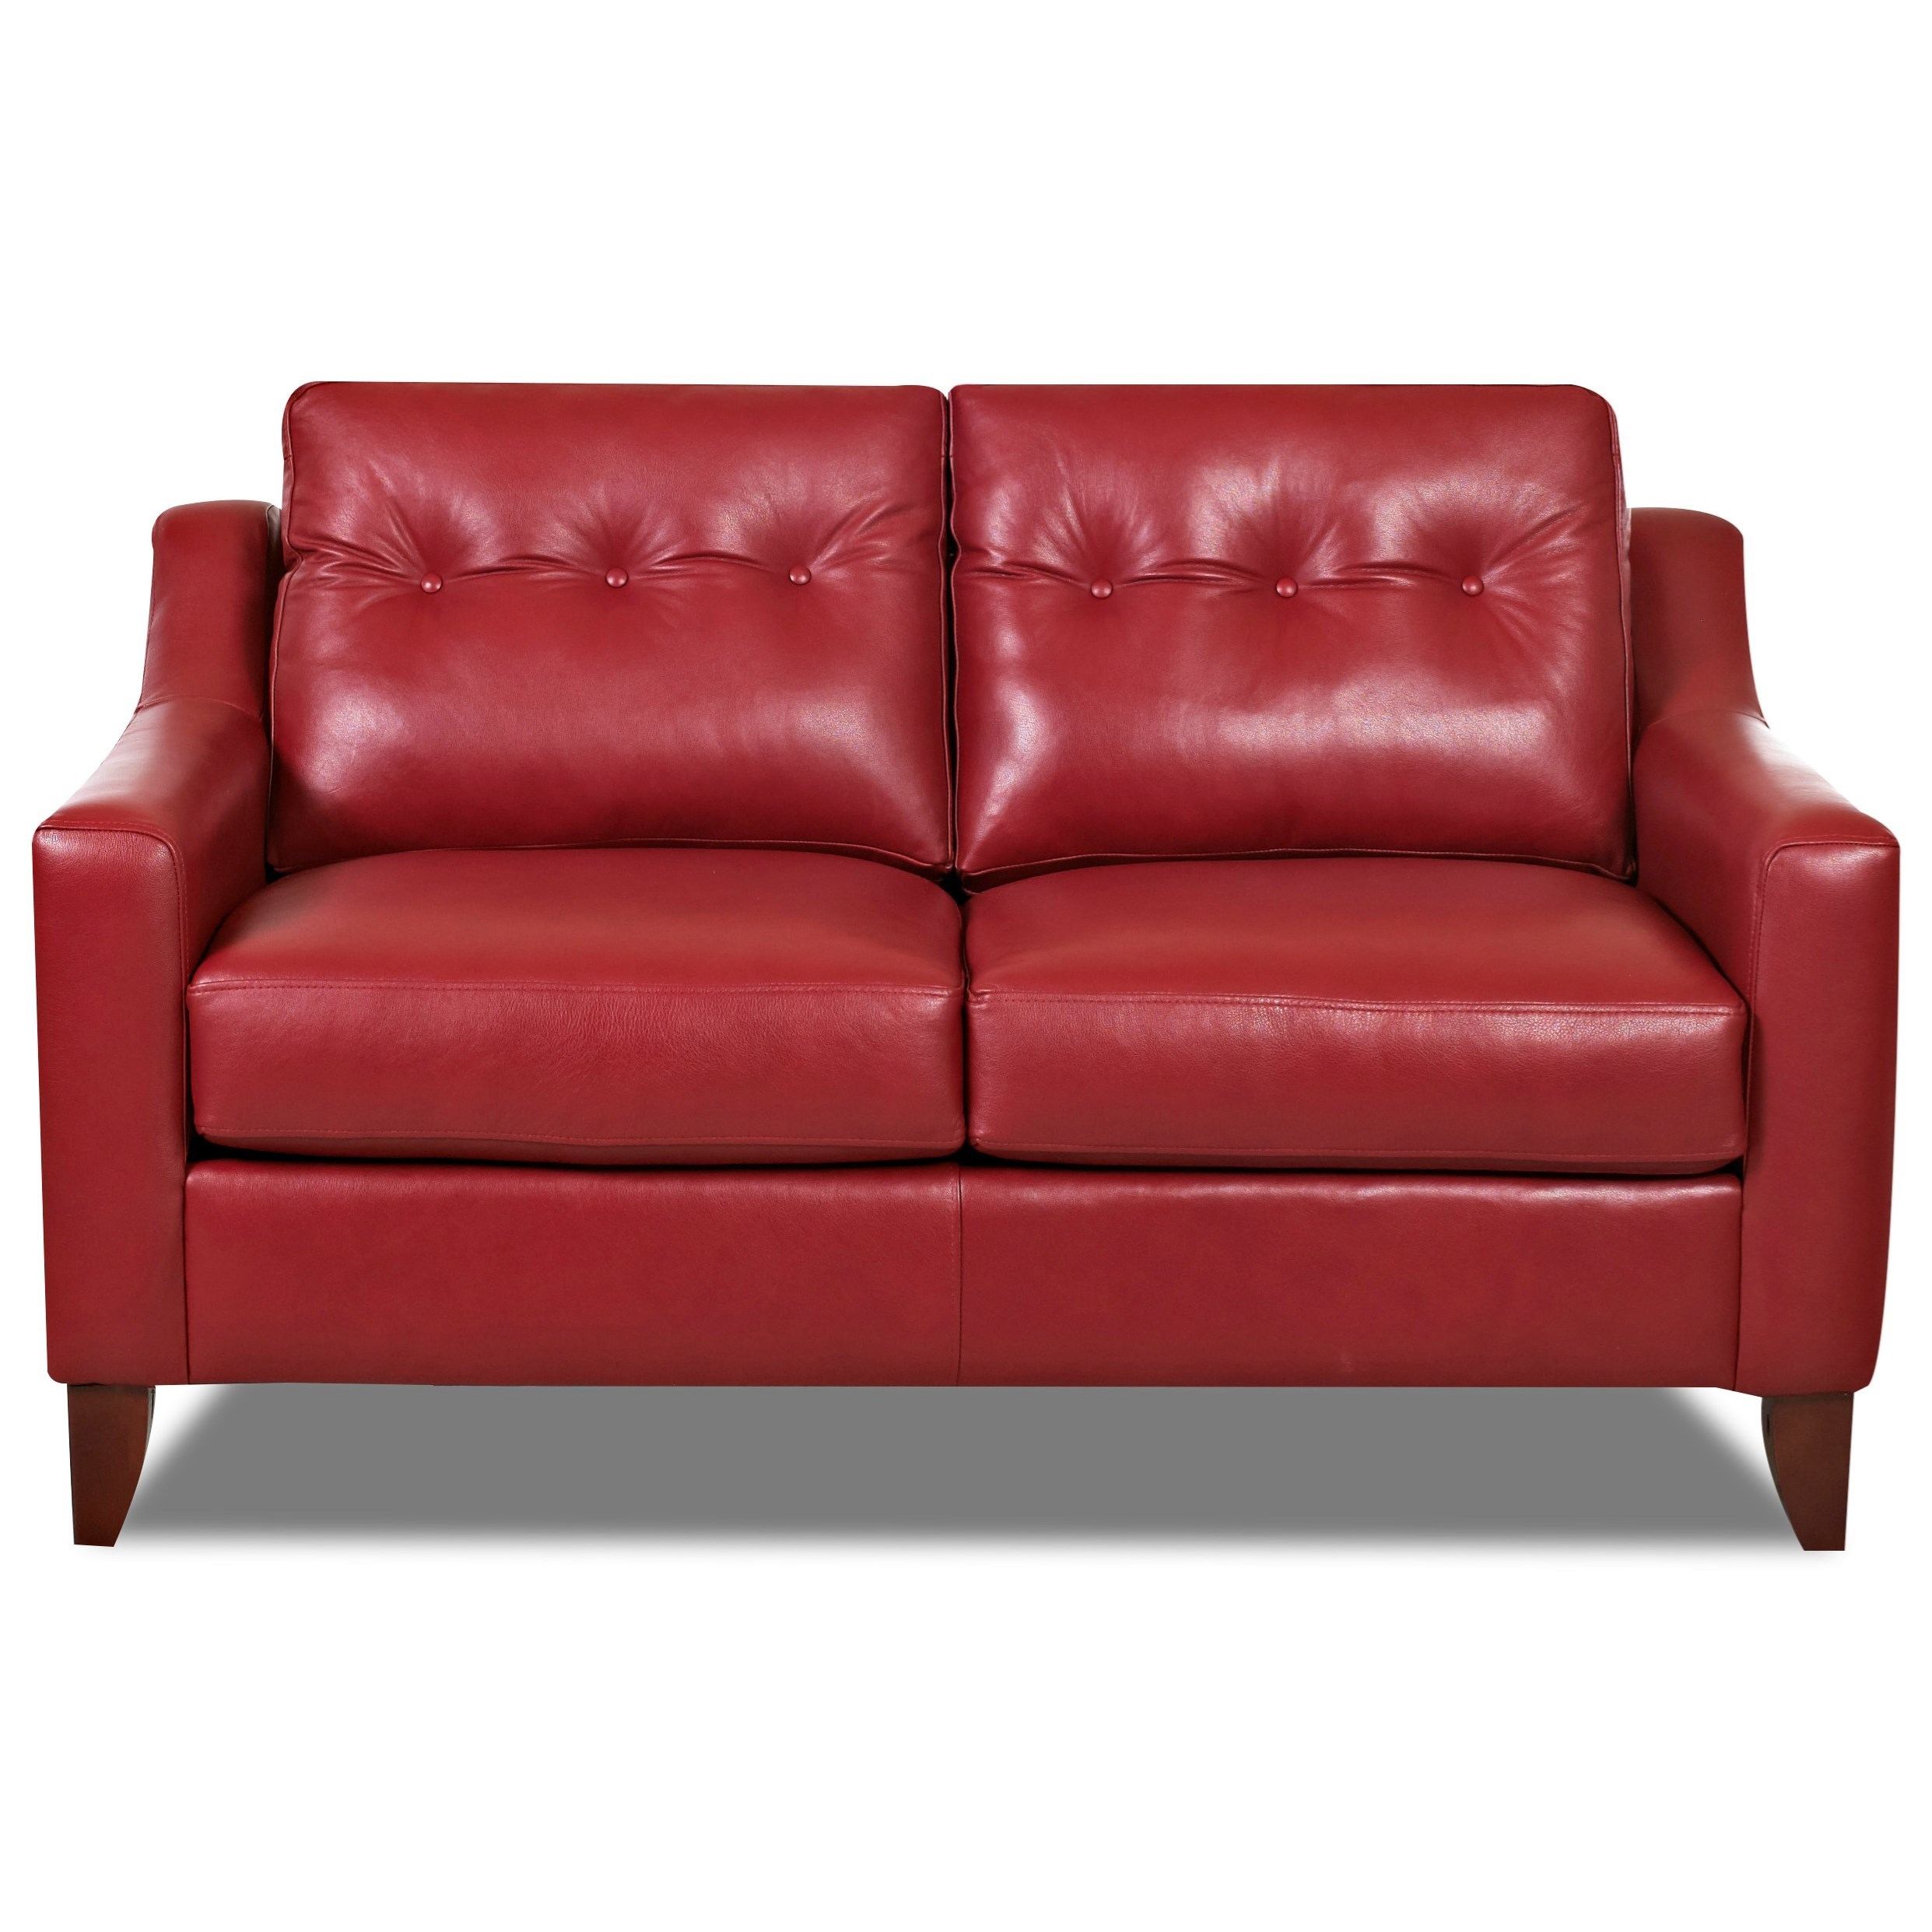 Astounding Mid Century Modern Style Loveseat With Tufted Cushions By Bralicious Painted Fabric Chair Ideas Braliciousco